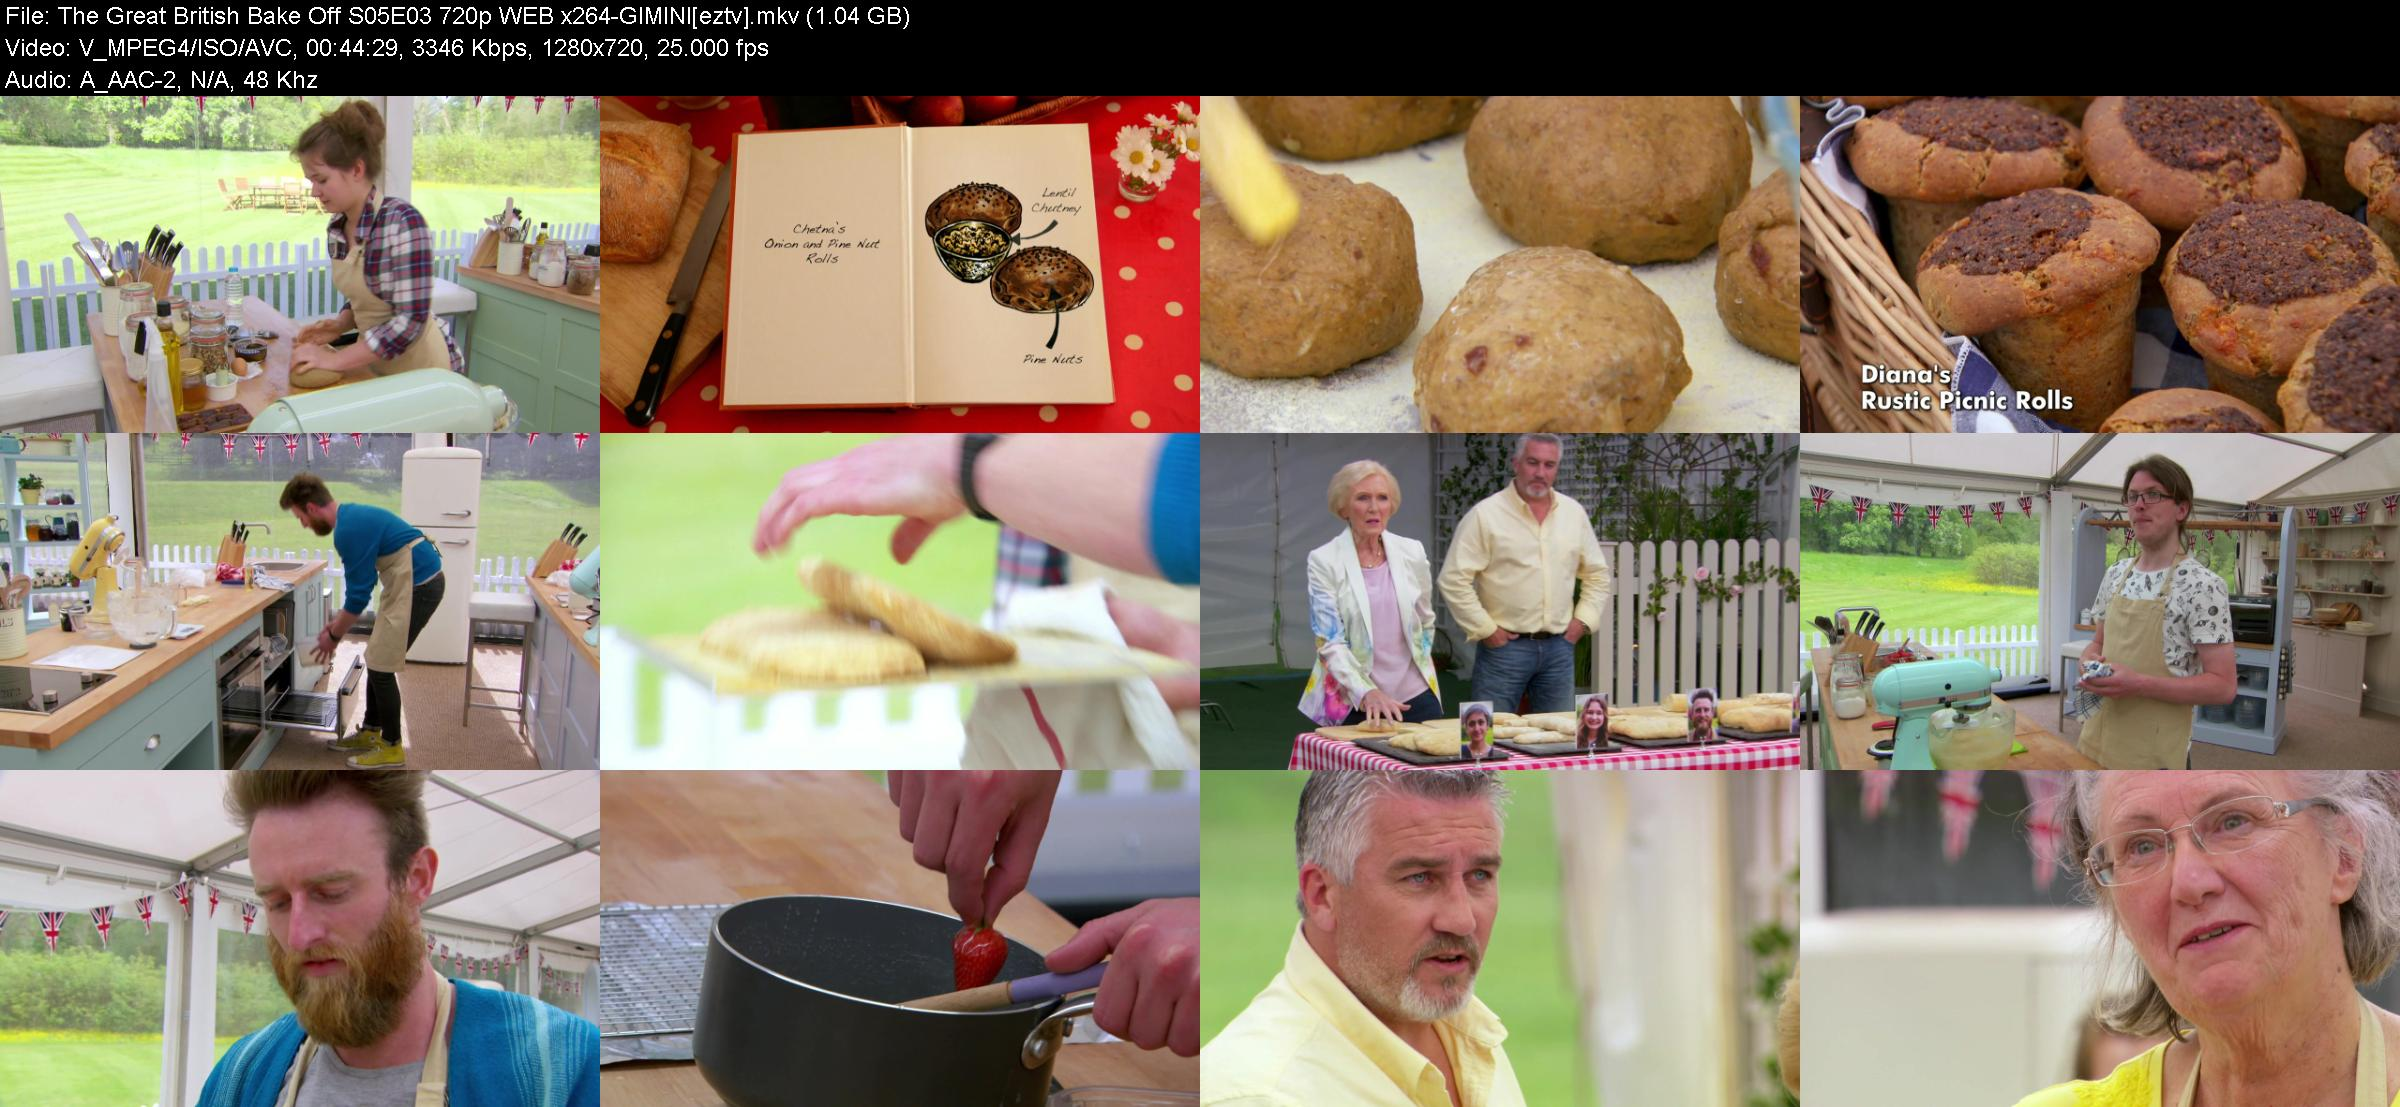 https://img34.pixhost.to/images/476/120751224_the-great-british-bake-off-s05e03-720p-web-x264-gimini.jpg